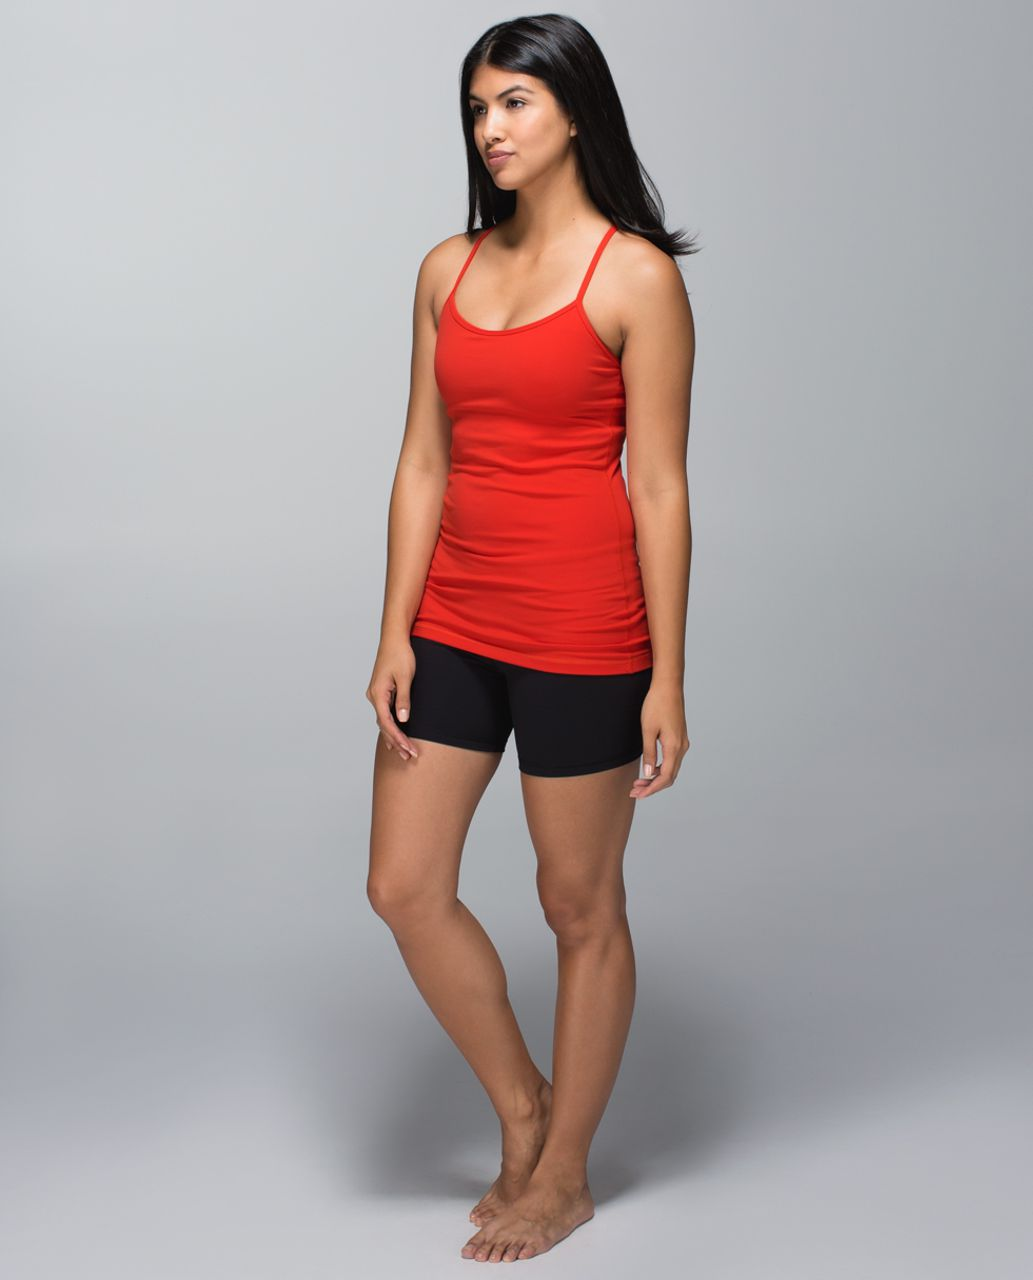 Lululemon Power Y Tank *Luon - Flaming Tomato